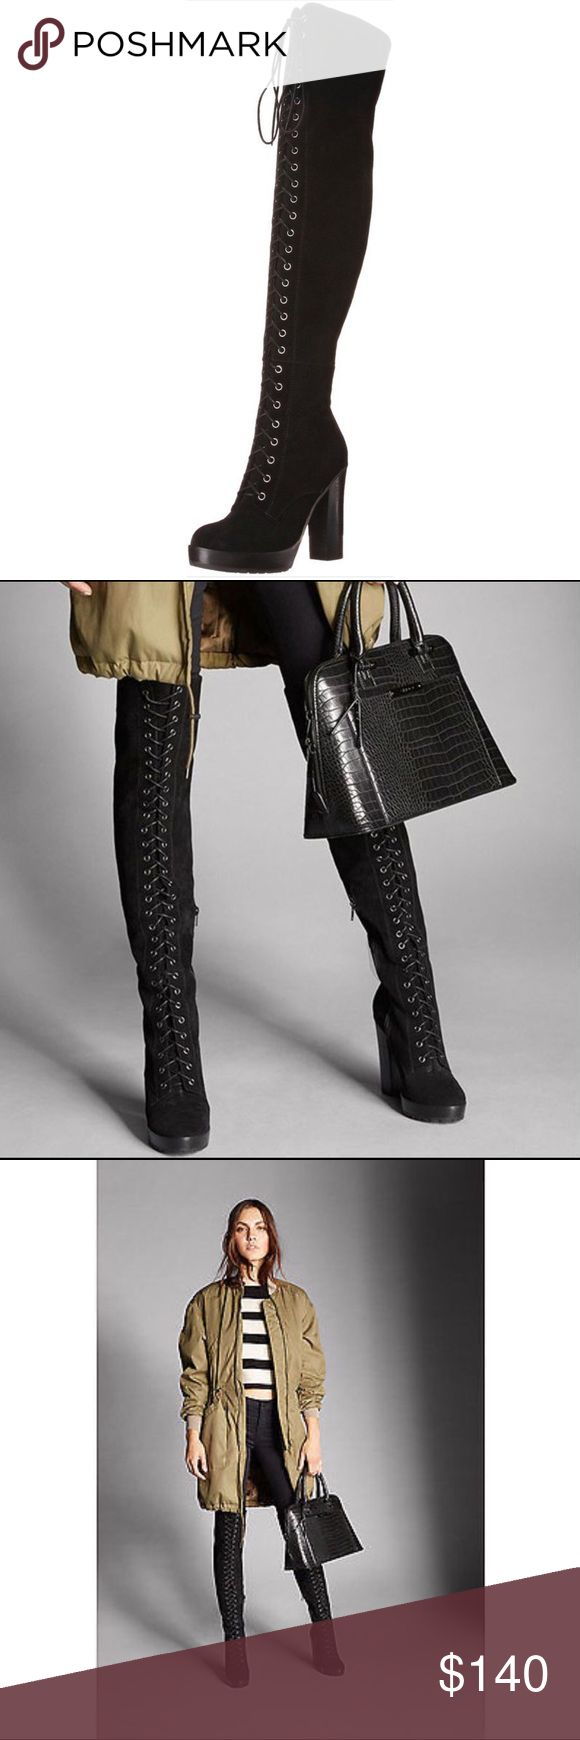 ALDO  Thigh High  Boots Sexy Corset Laceup Suede Thigh High Over Knee Boots from Aldo. ✨New✨ Aldo Shoes Over the Knee Boots